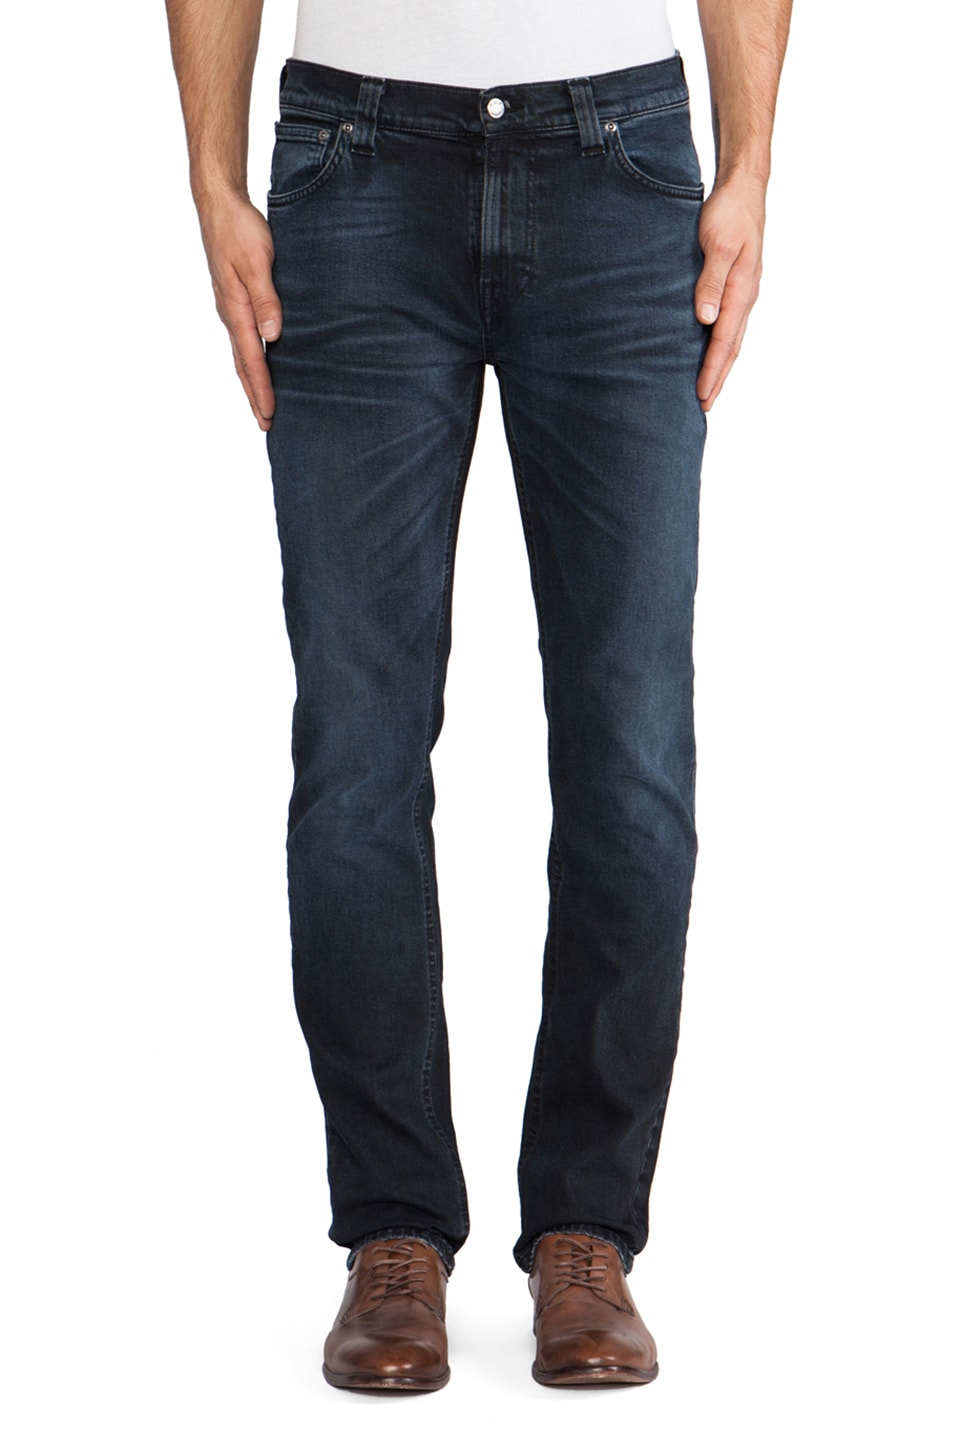 Nudie Jeans Thin Finn in Org. Blue Core